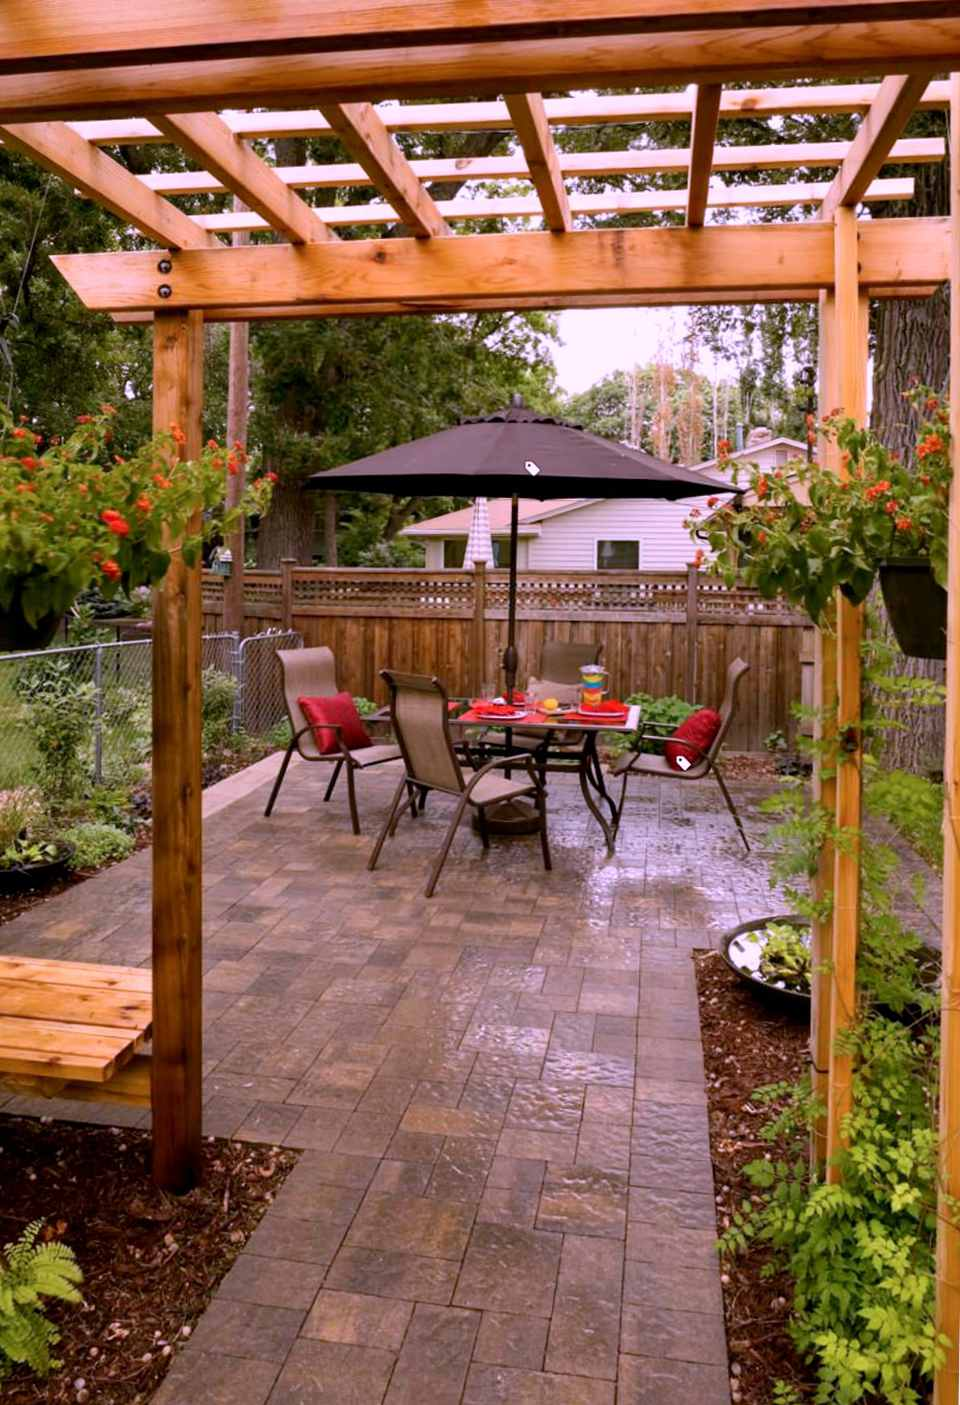 25 Perfect Patio Paver Design Ideas on Small Backyard Brick Patio Ideas  id=81767